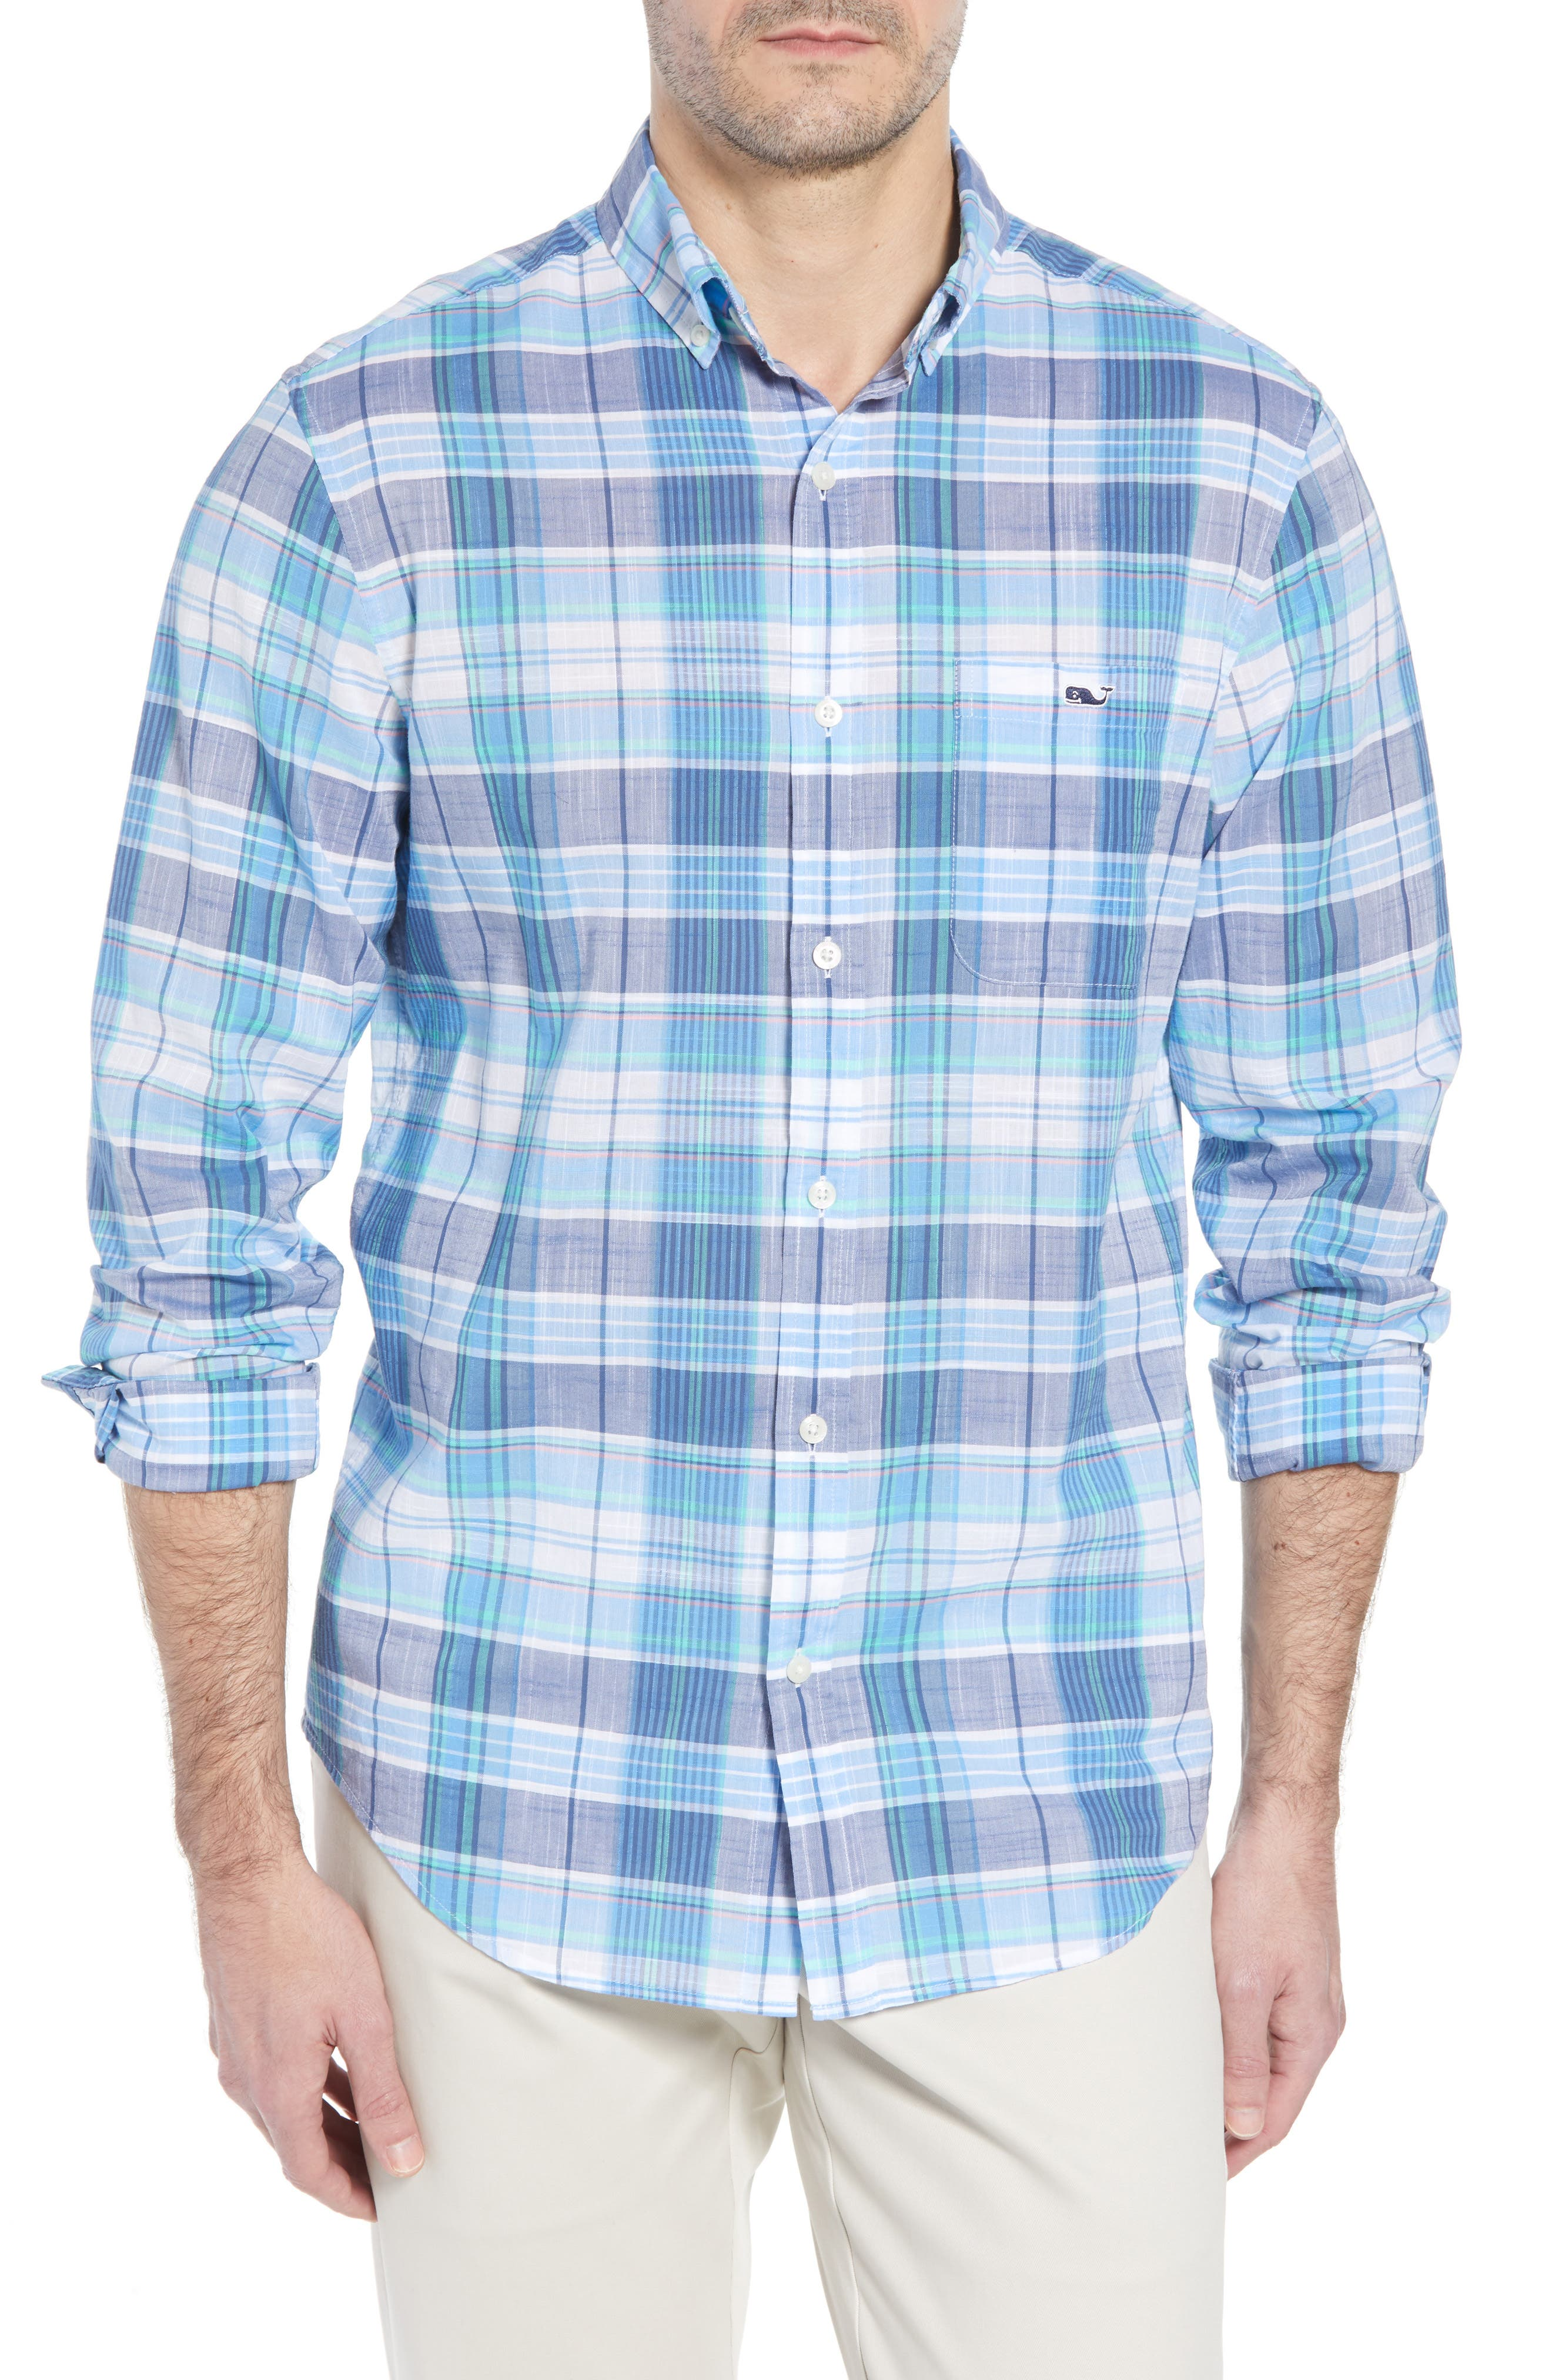 Smith Point Tucker Classic Fit Plaid Sport Shirt,                         Main,                         color, Moonshine